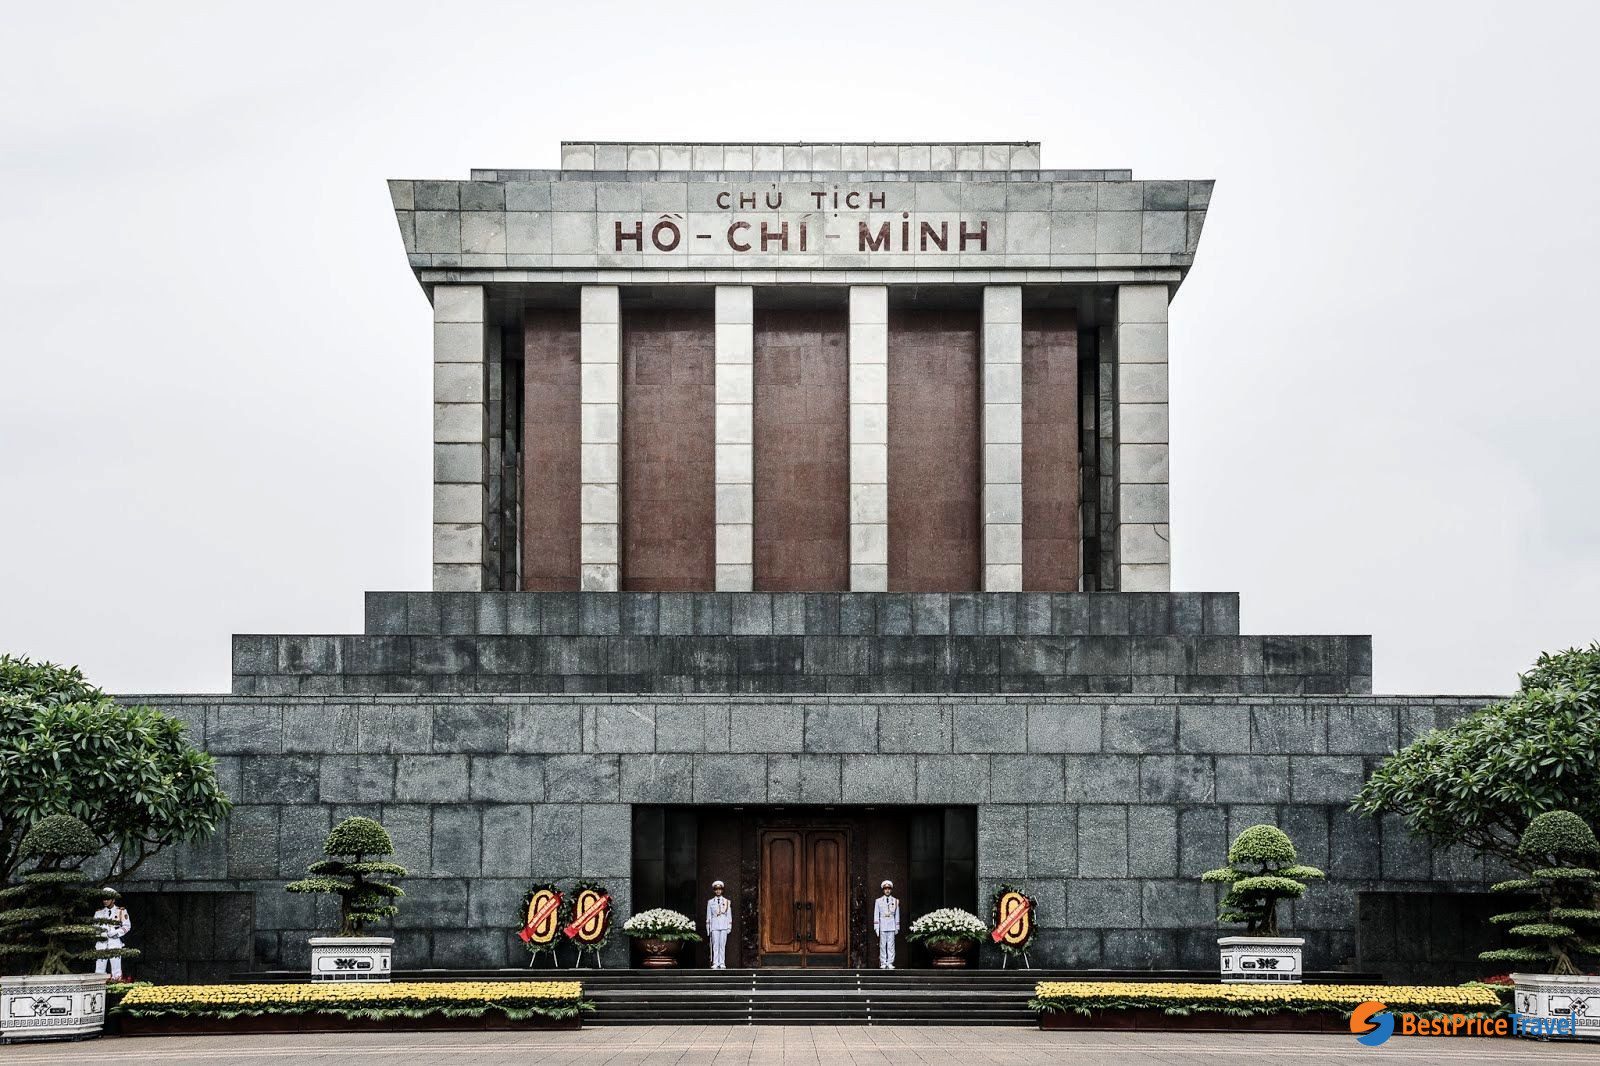 Dress with respect when visiting Ho Chi Minh mausoleum